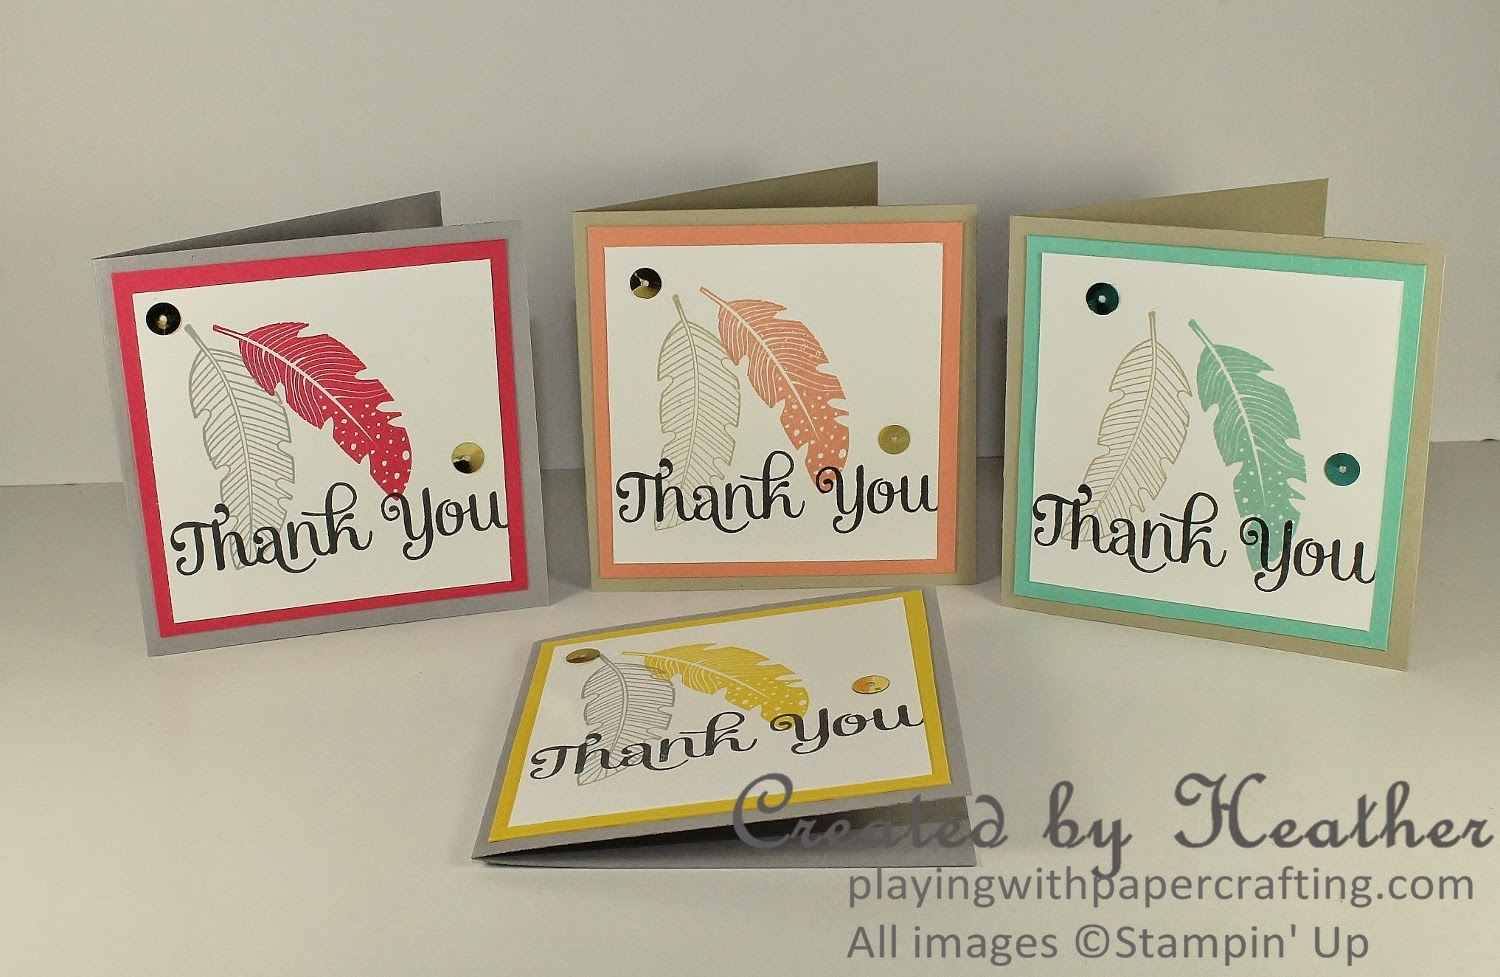 Playing with Papercrafting: Feathery Thank You Cards